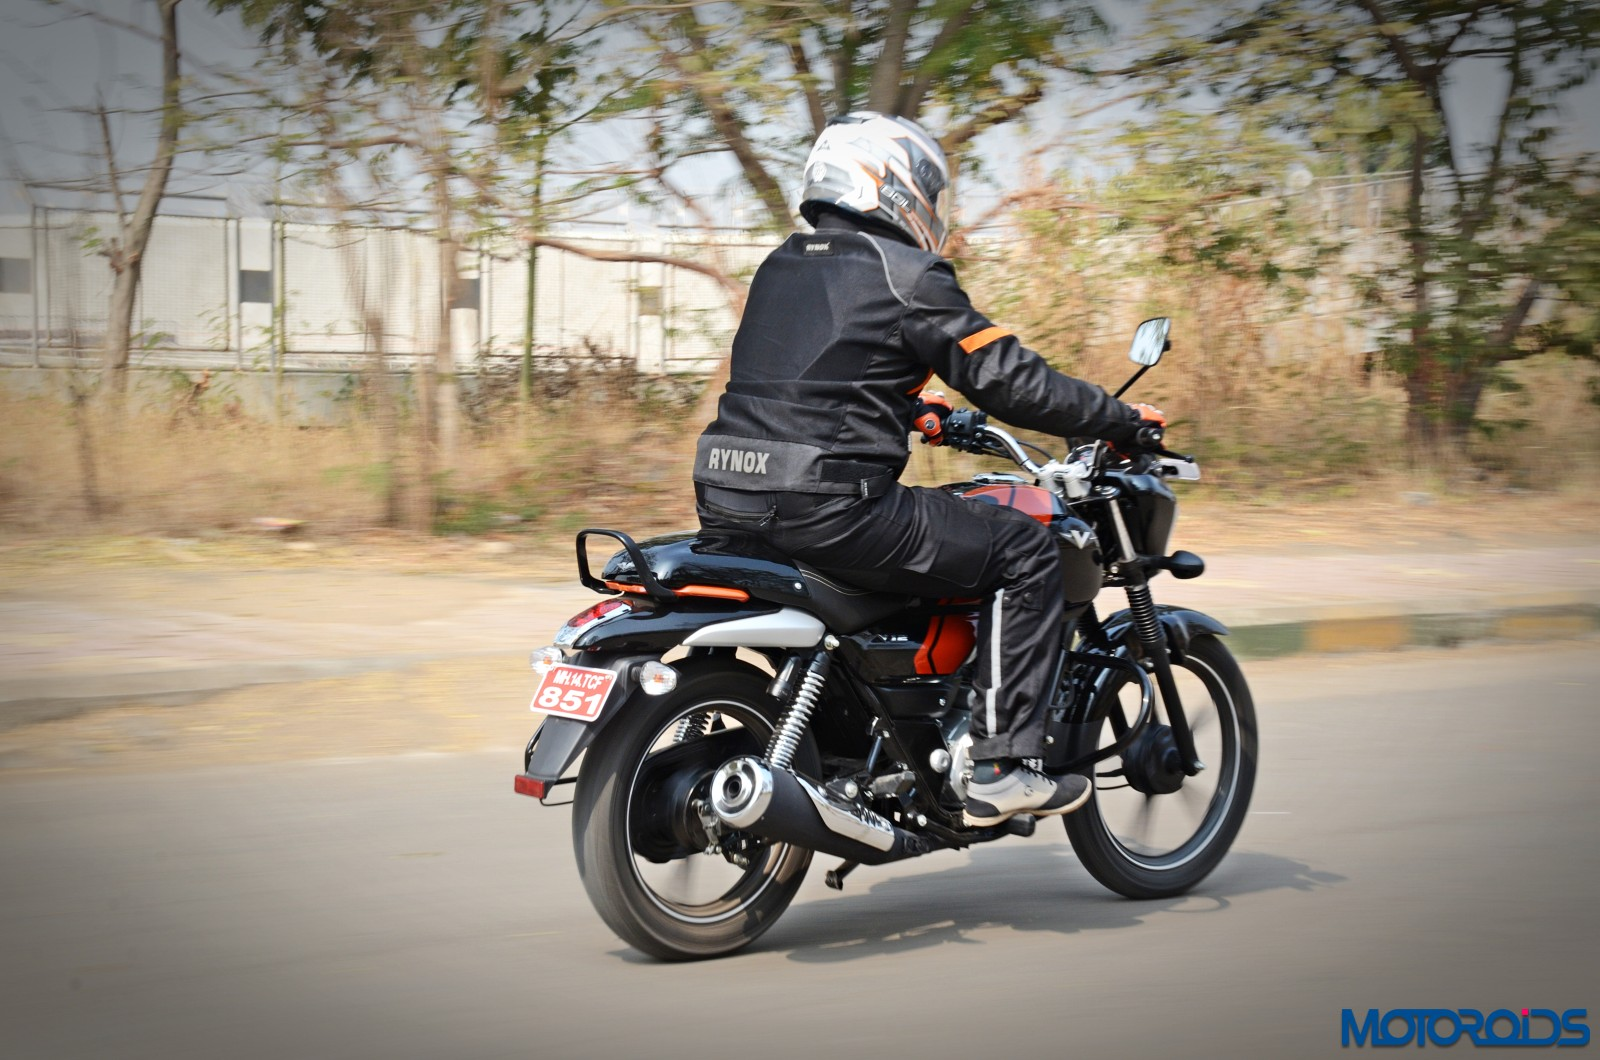 Bajaj-V12-Review-Action-Shots-10